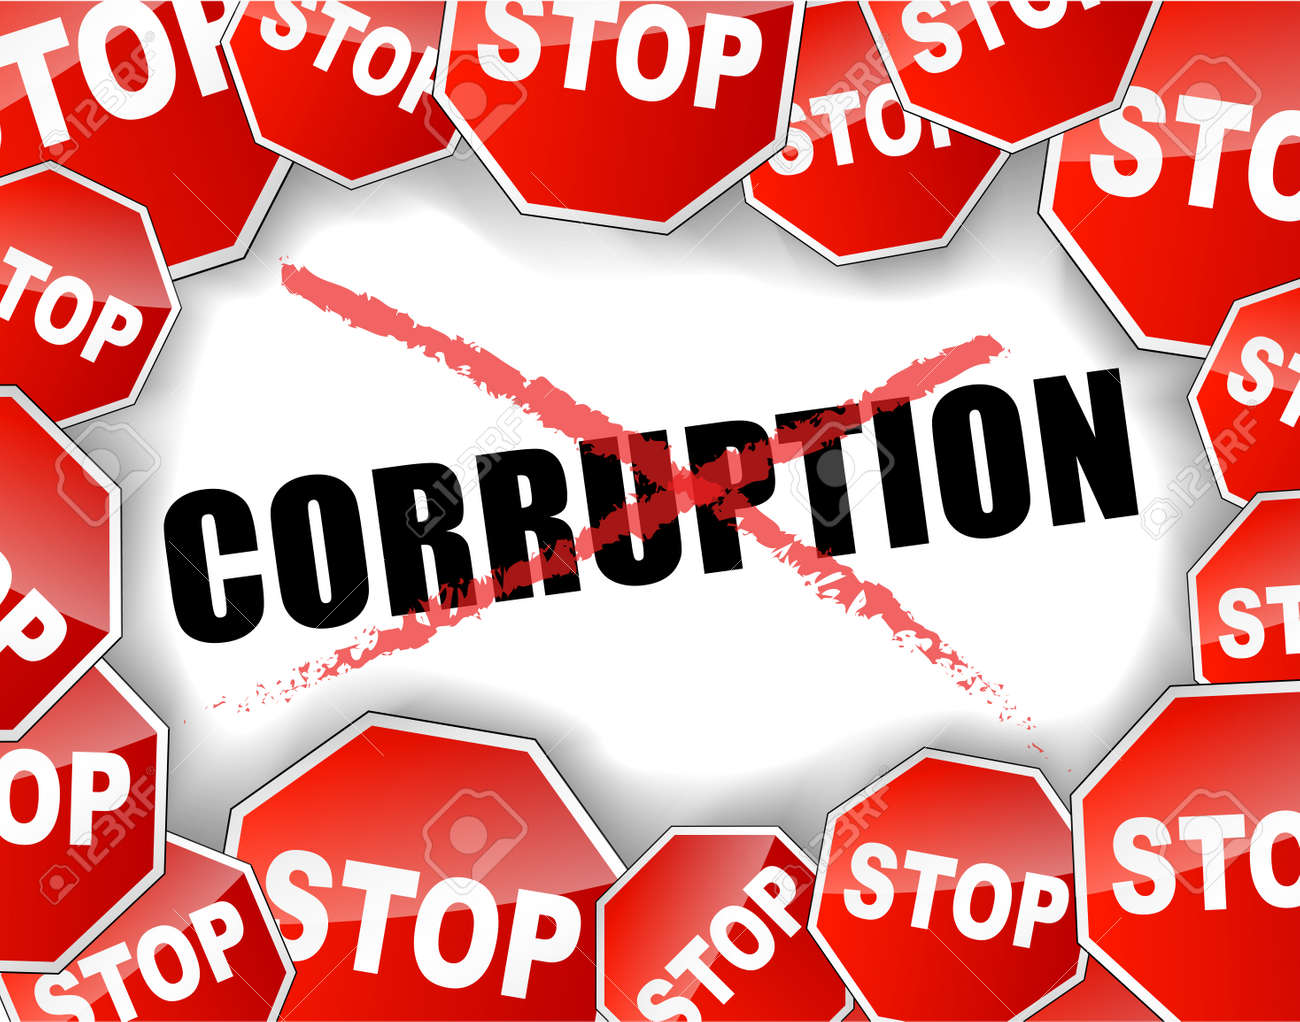 vector illustration of stop corruption concept background royalty